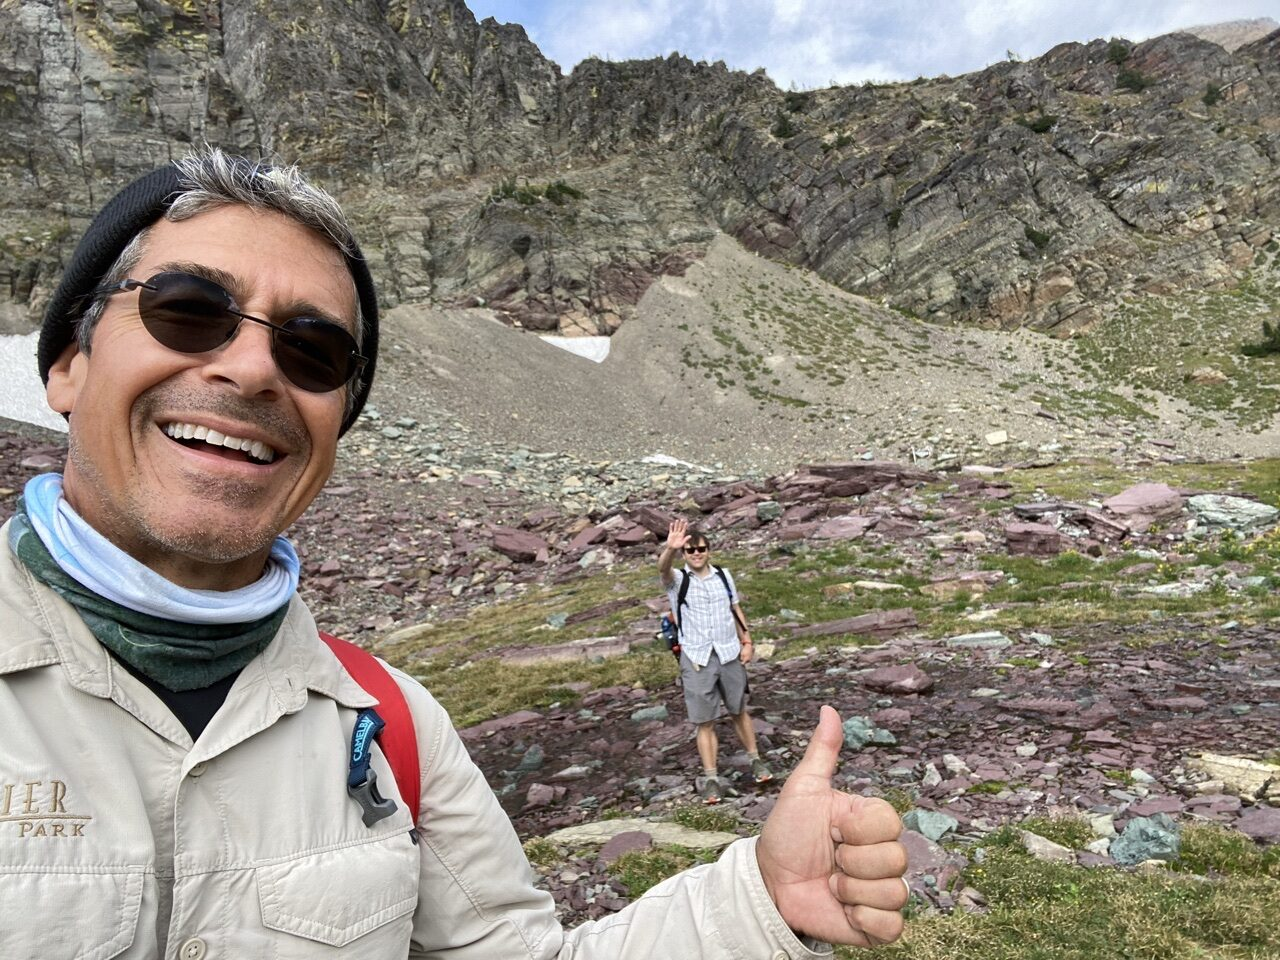 Jeff noel and Jody Maberry in the mountains